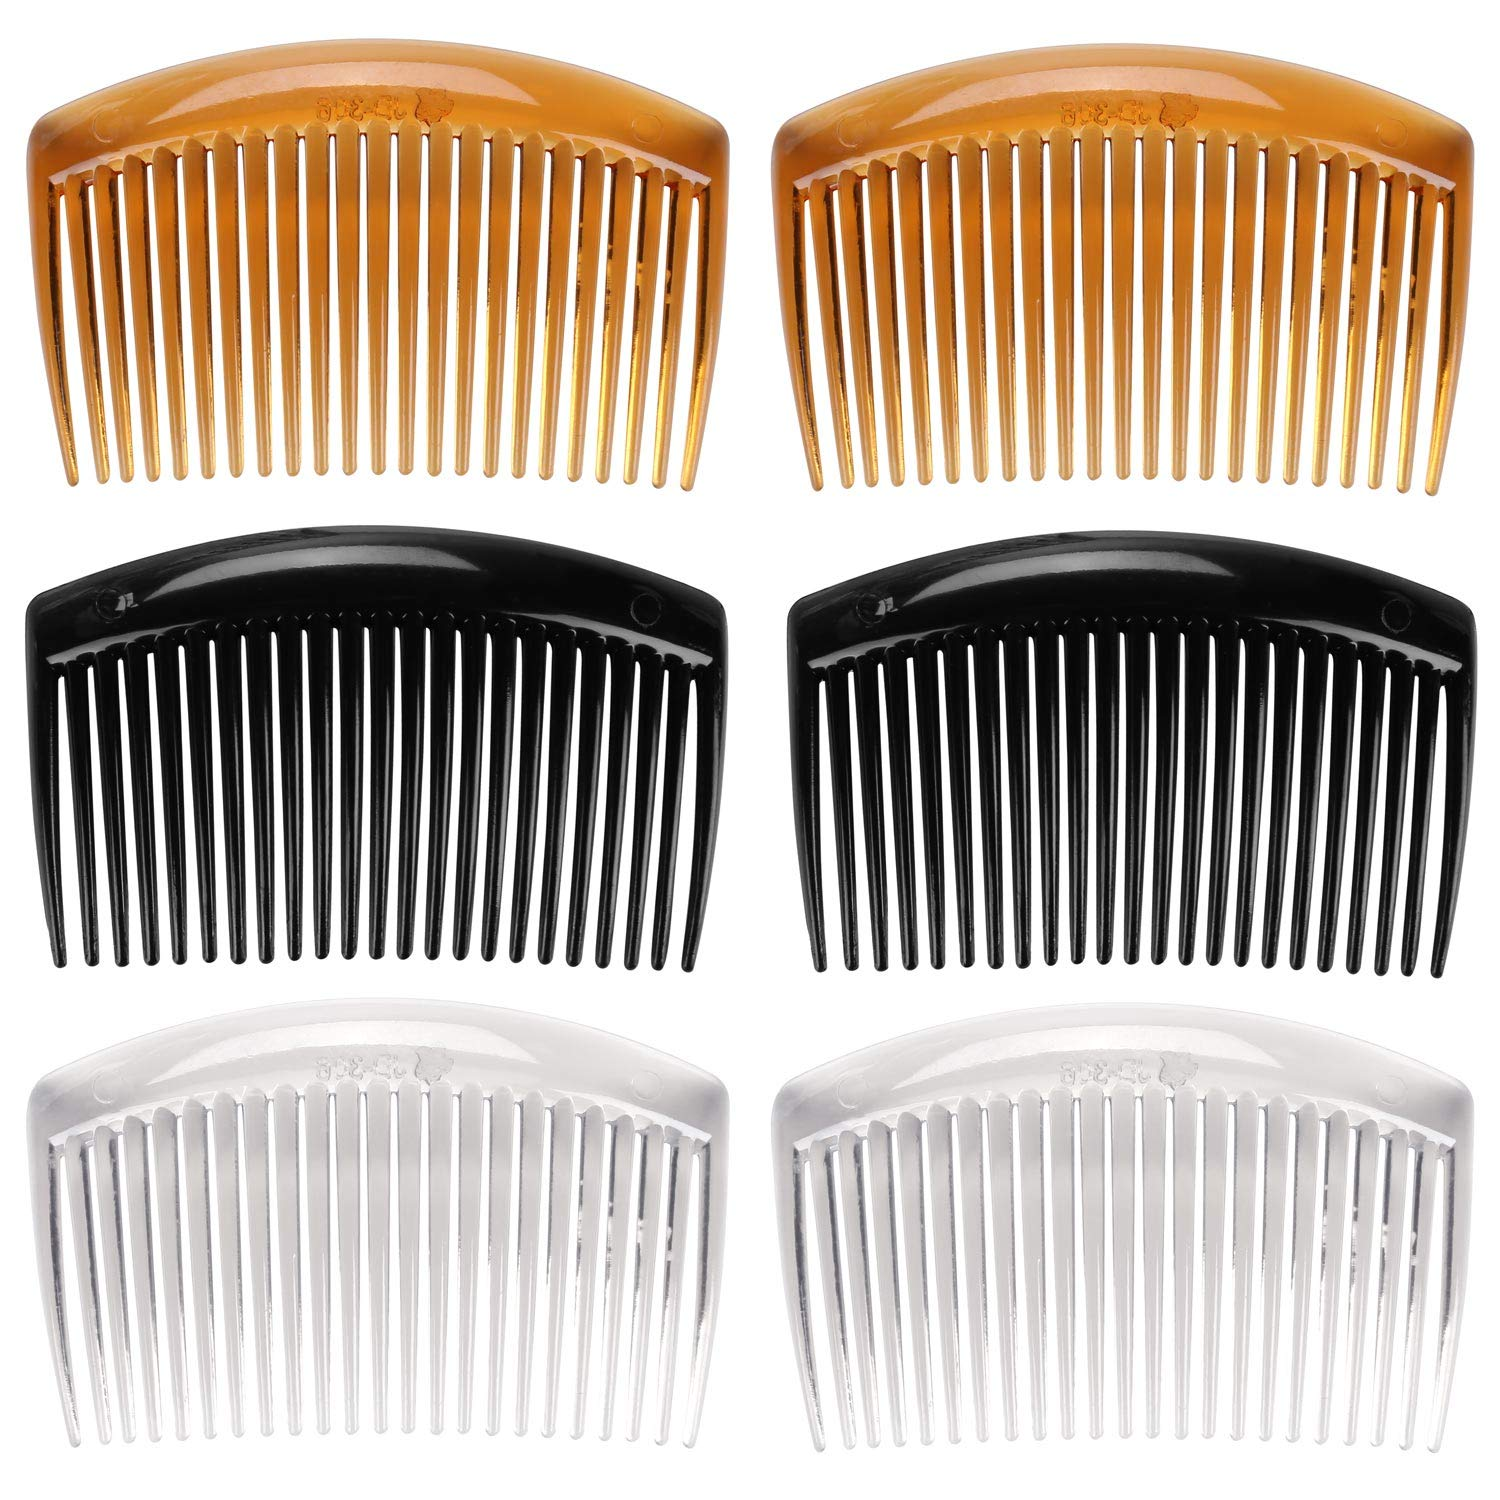 6 Pcs French Twist Comb Plastic Side Hair Combs with 23 Teeth Hair Comb Hair Clip Combs for Fine Hair Accessory for Women : Beauty